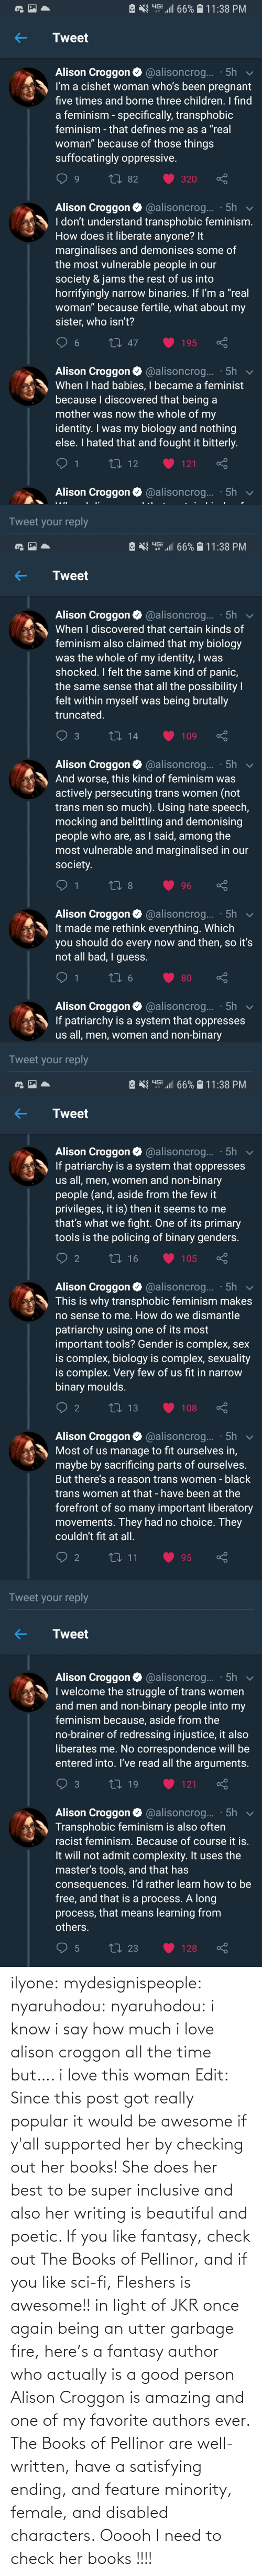 yall: ilyone:  mydesignispeople:  nyaruhodou:  nyaruhodou:  i know i say how much i love alison croggon all the time but…. i love this woman   Edit: Since this post got really popular it would be awesome if y'all supported her by checking out her books! She does her best to be super inclusive and also her writing is beautiful and poetic. If you like fantasy, check out The Books of Pellinor, and if you like sci-fi, Fleshers is awesome!!   in light of JKR once again being an utter garbage fire, here's a fantasy author who actually is a good person  Alison Croggon is amazing and one of my favorite authors ever. The Books of Pellinor are well-written, have a satisfying ending, and feature minority, female, and disabled characters.  Ooooh I need to check her books !!!!